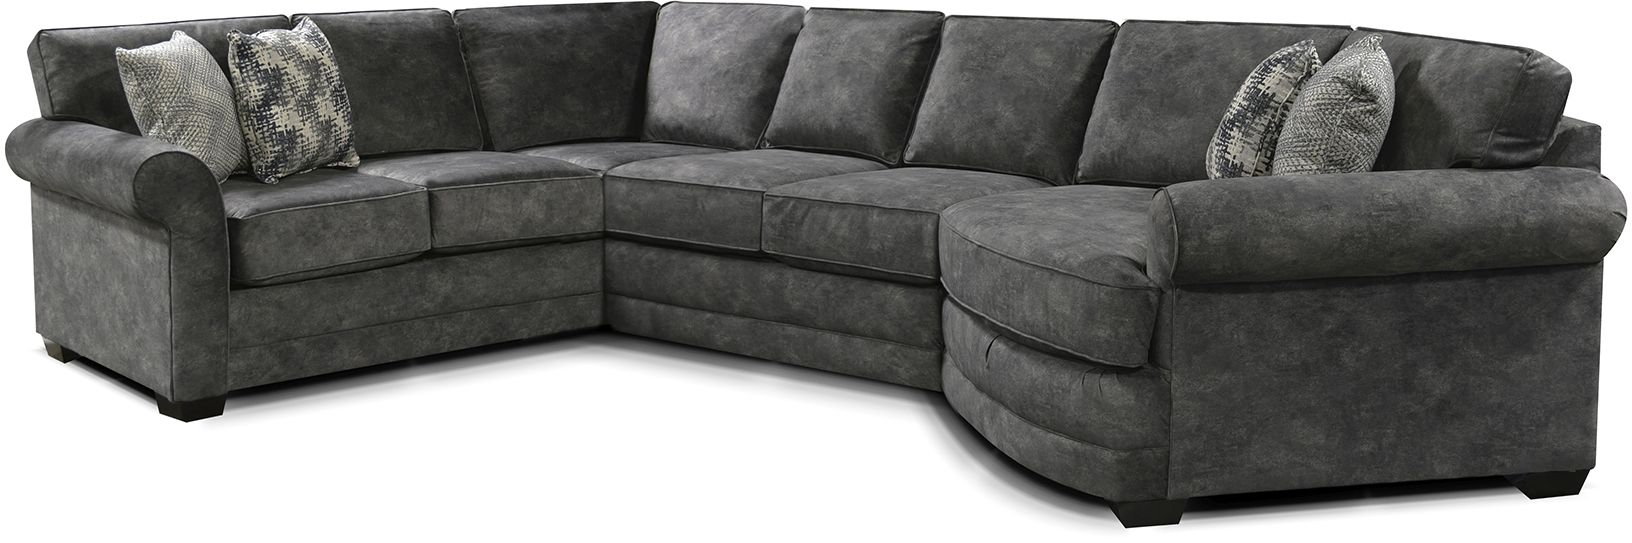 Reviews For England Furniture Brantley Sectional 5630 Sect